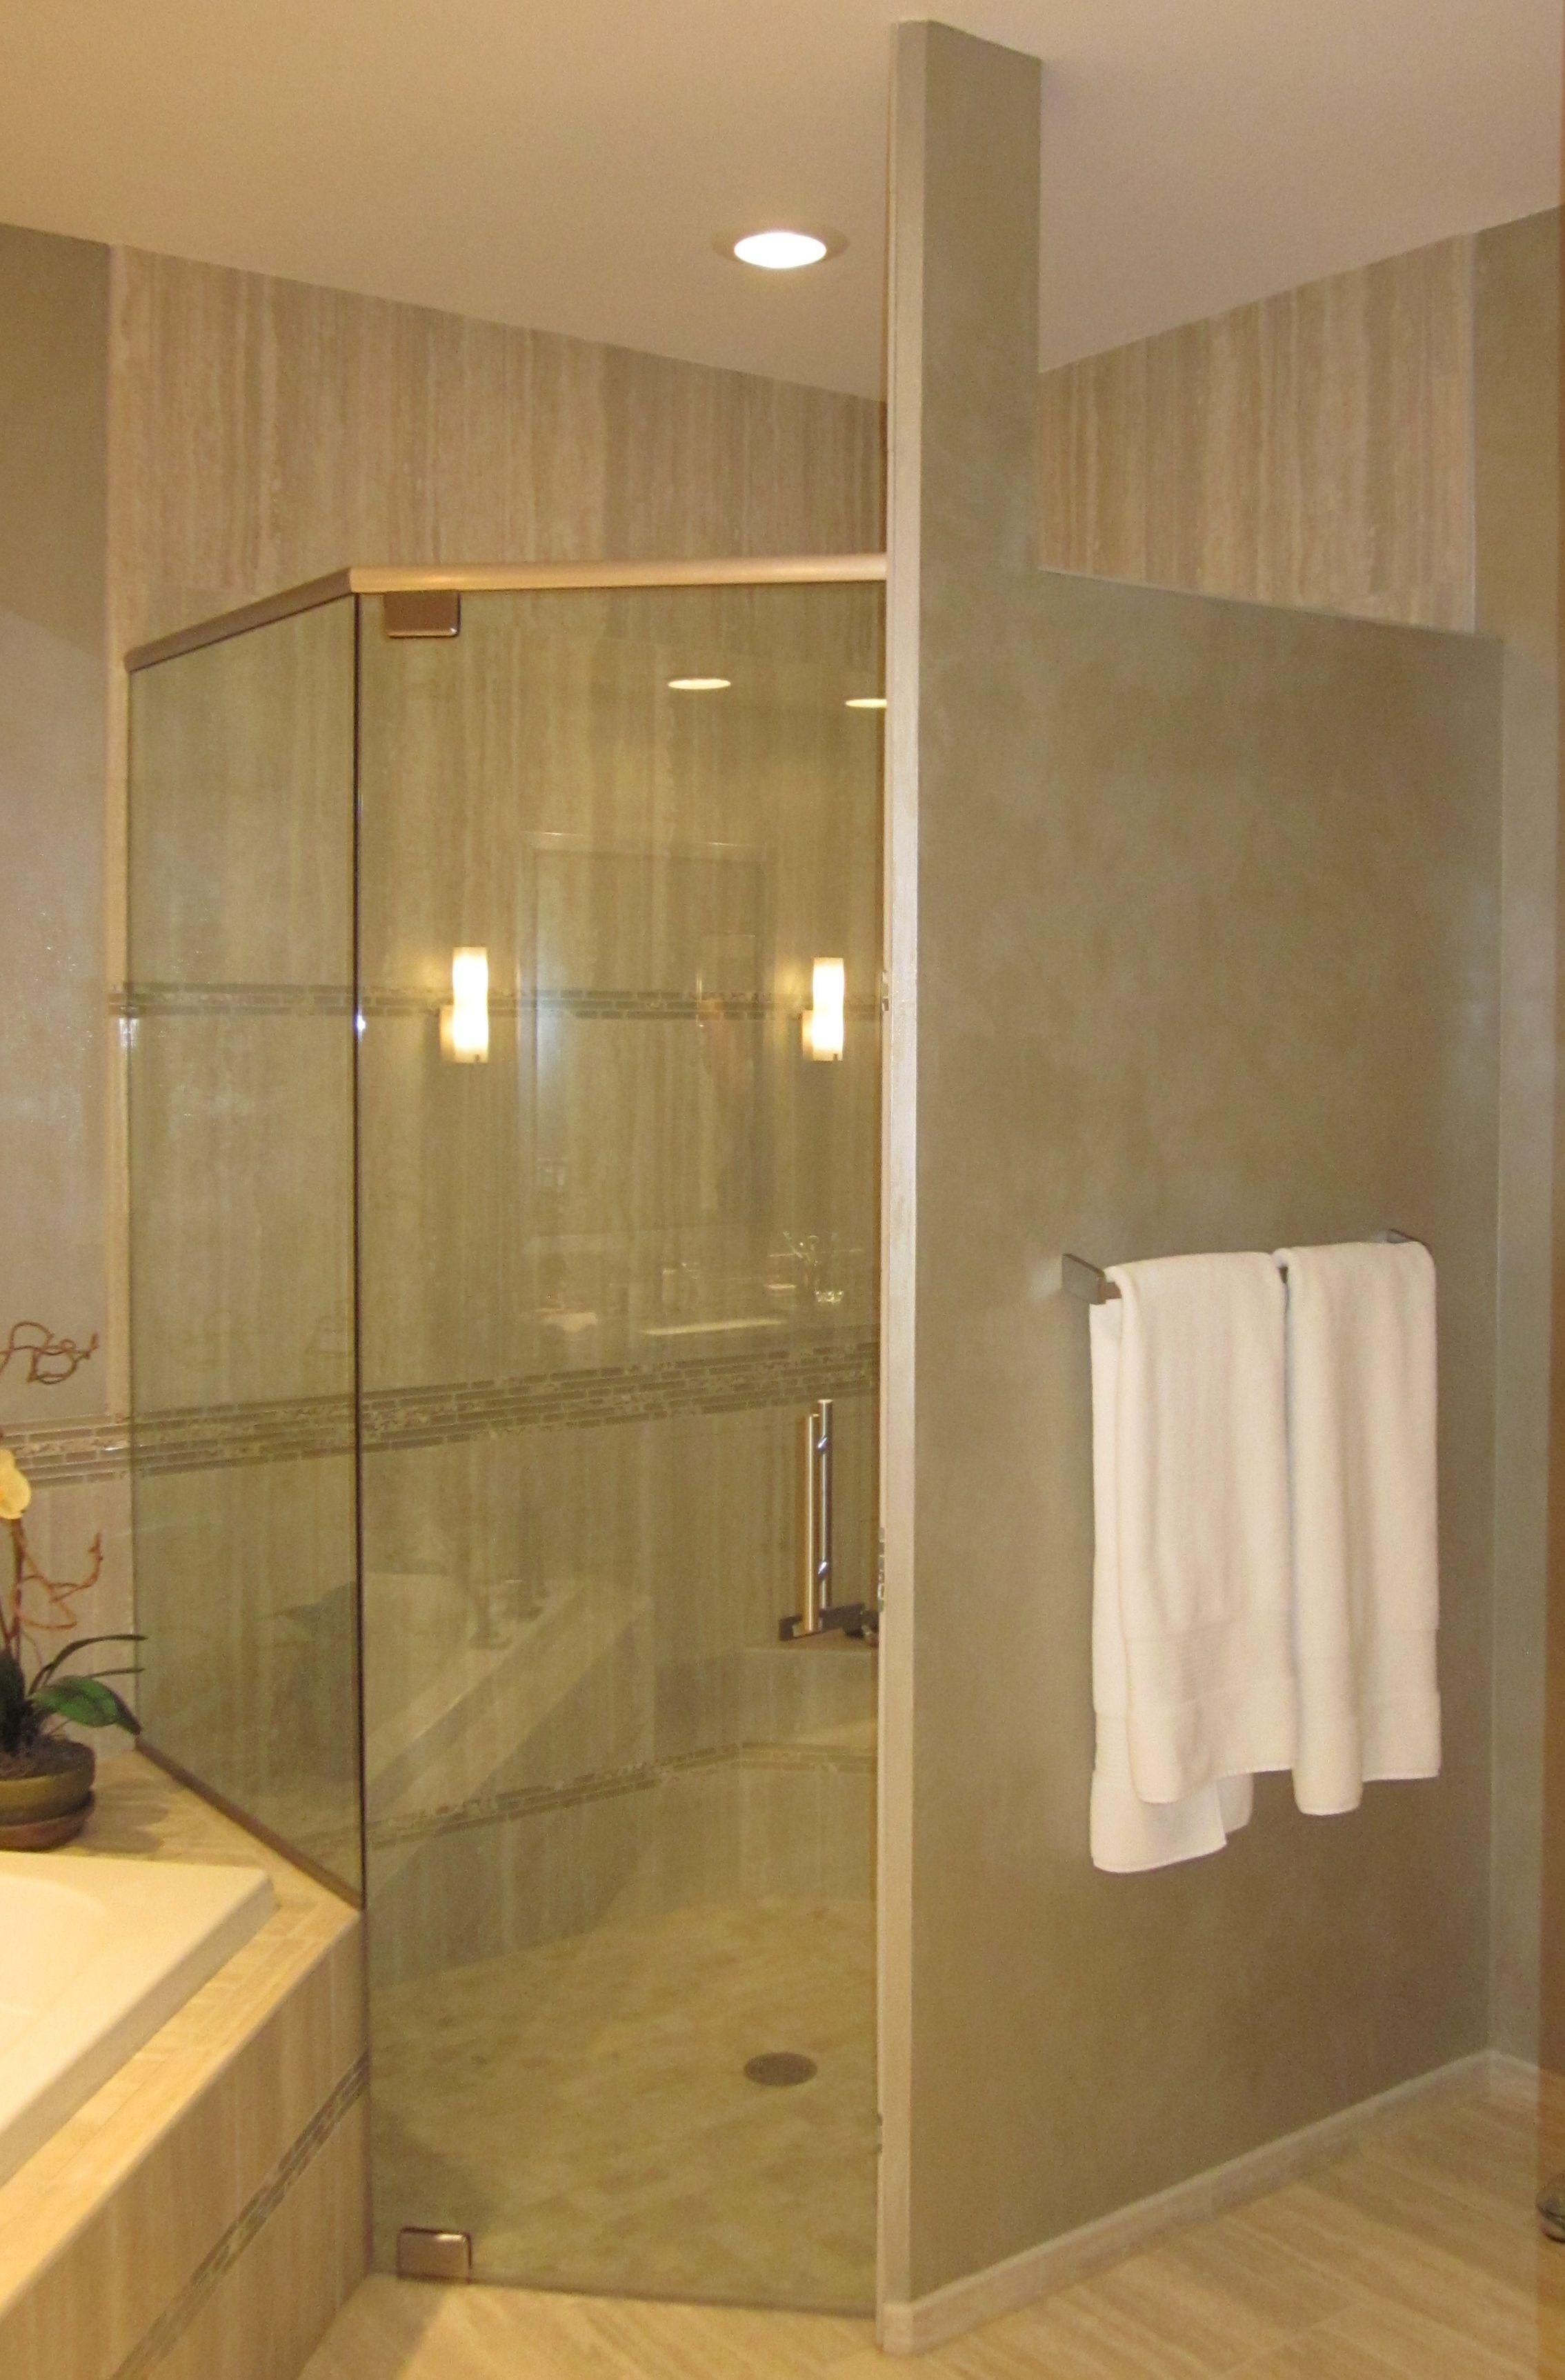 High Quality Bathroom Remodel By J Brothers Home Improvement. Maple Grove, MN  JBrothersHI.com